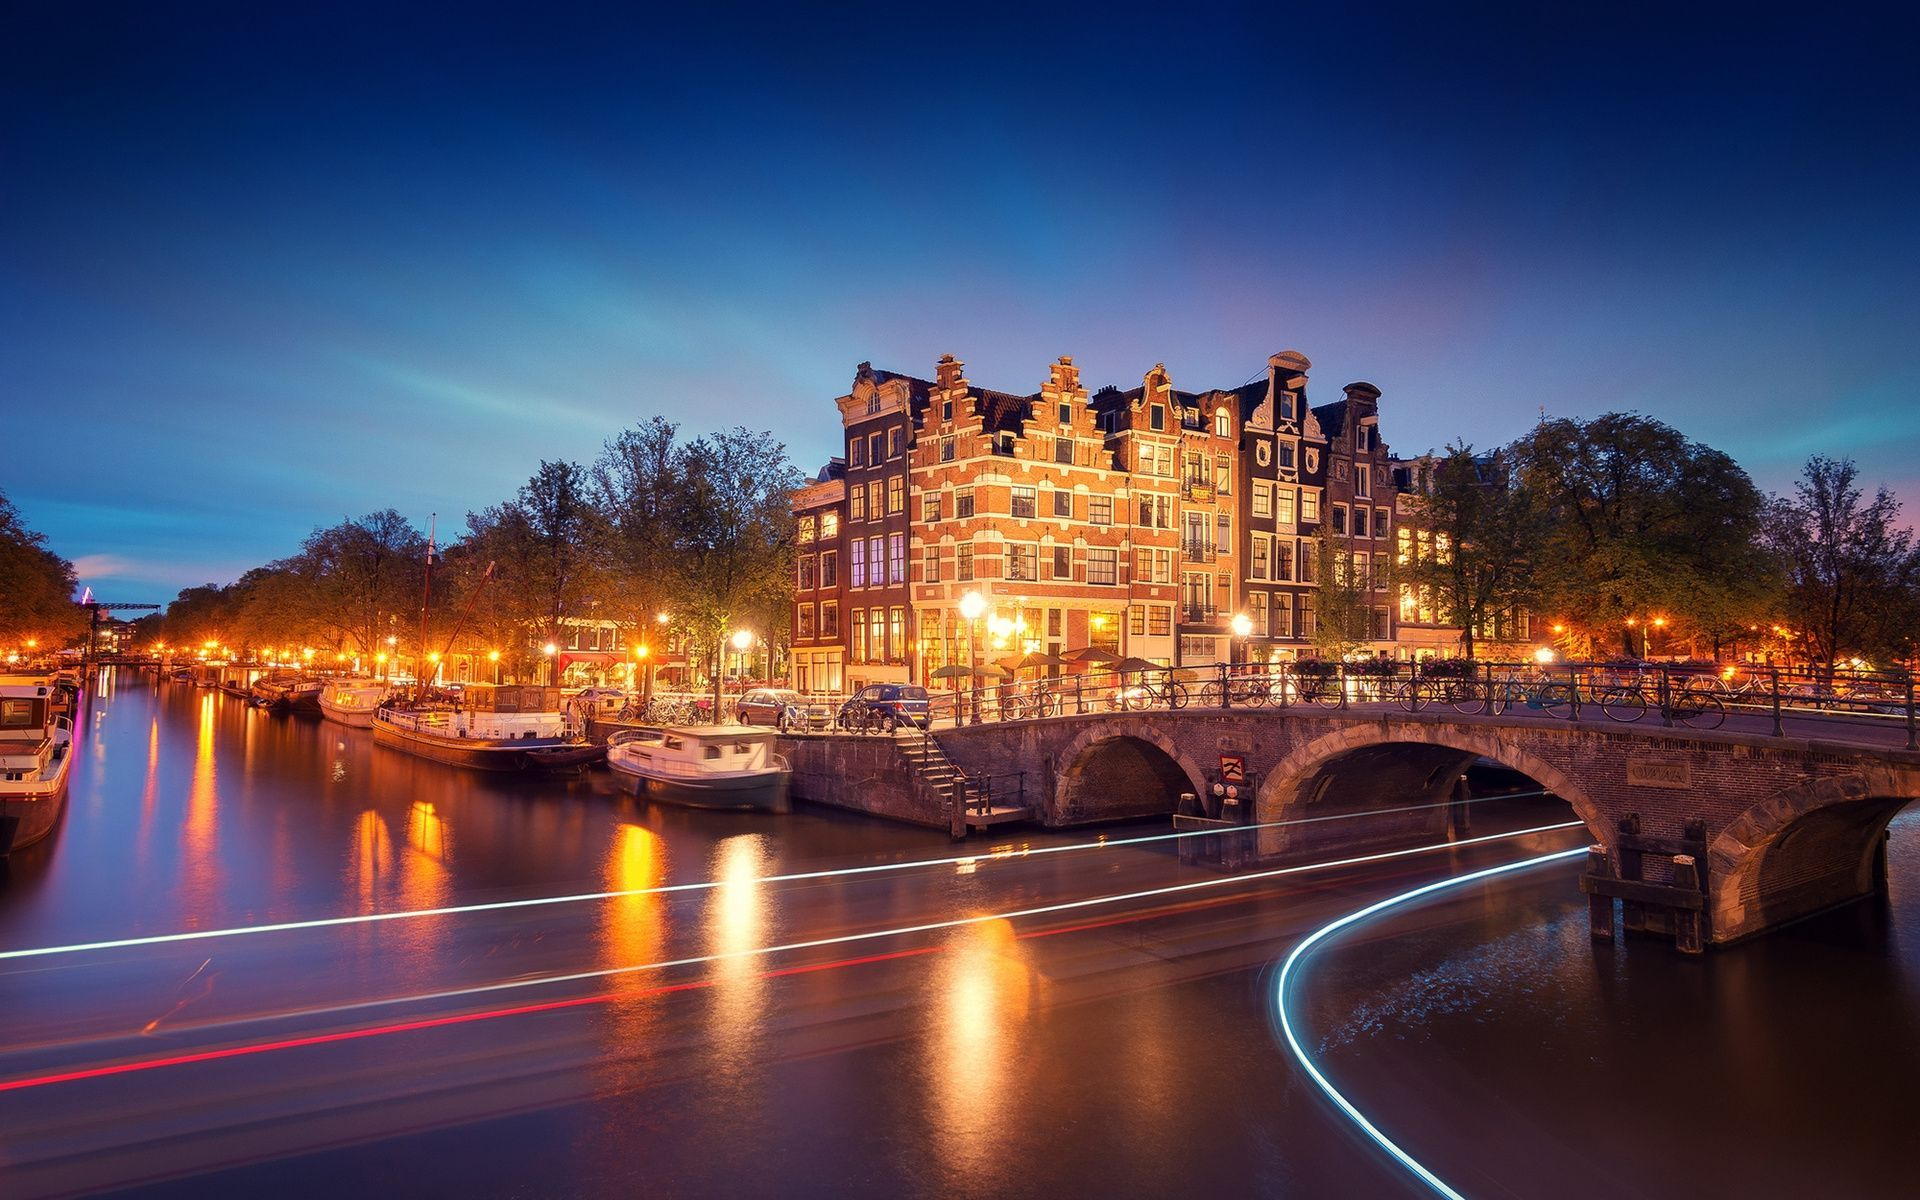 Beautiful Car Wallpaper Background 18 Excellent Hd Amsterdam Wallpapers